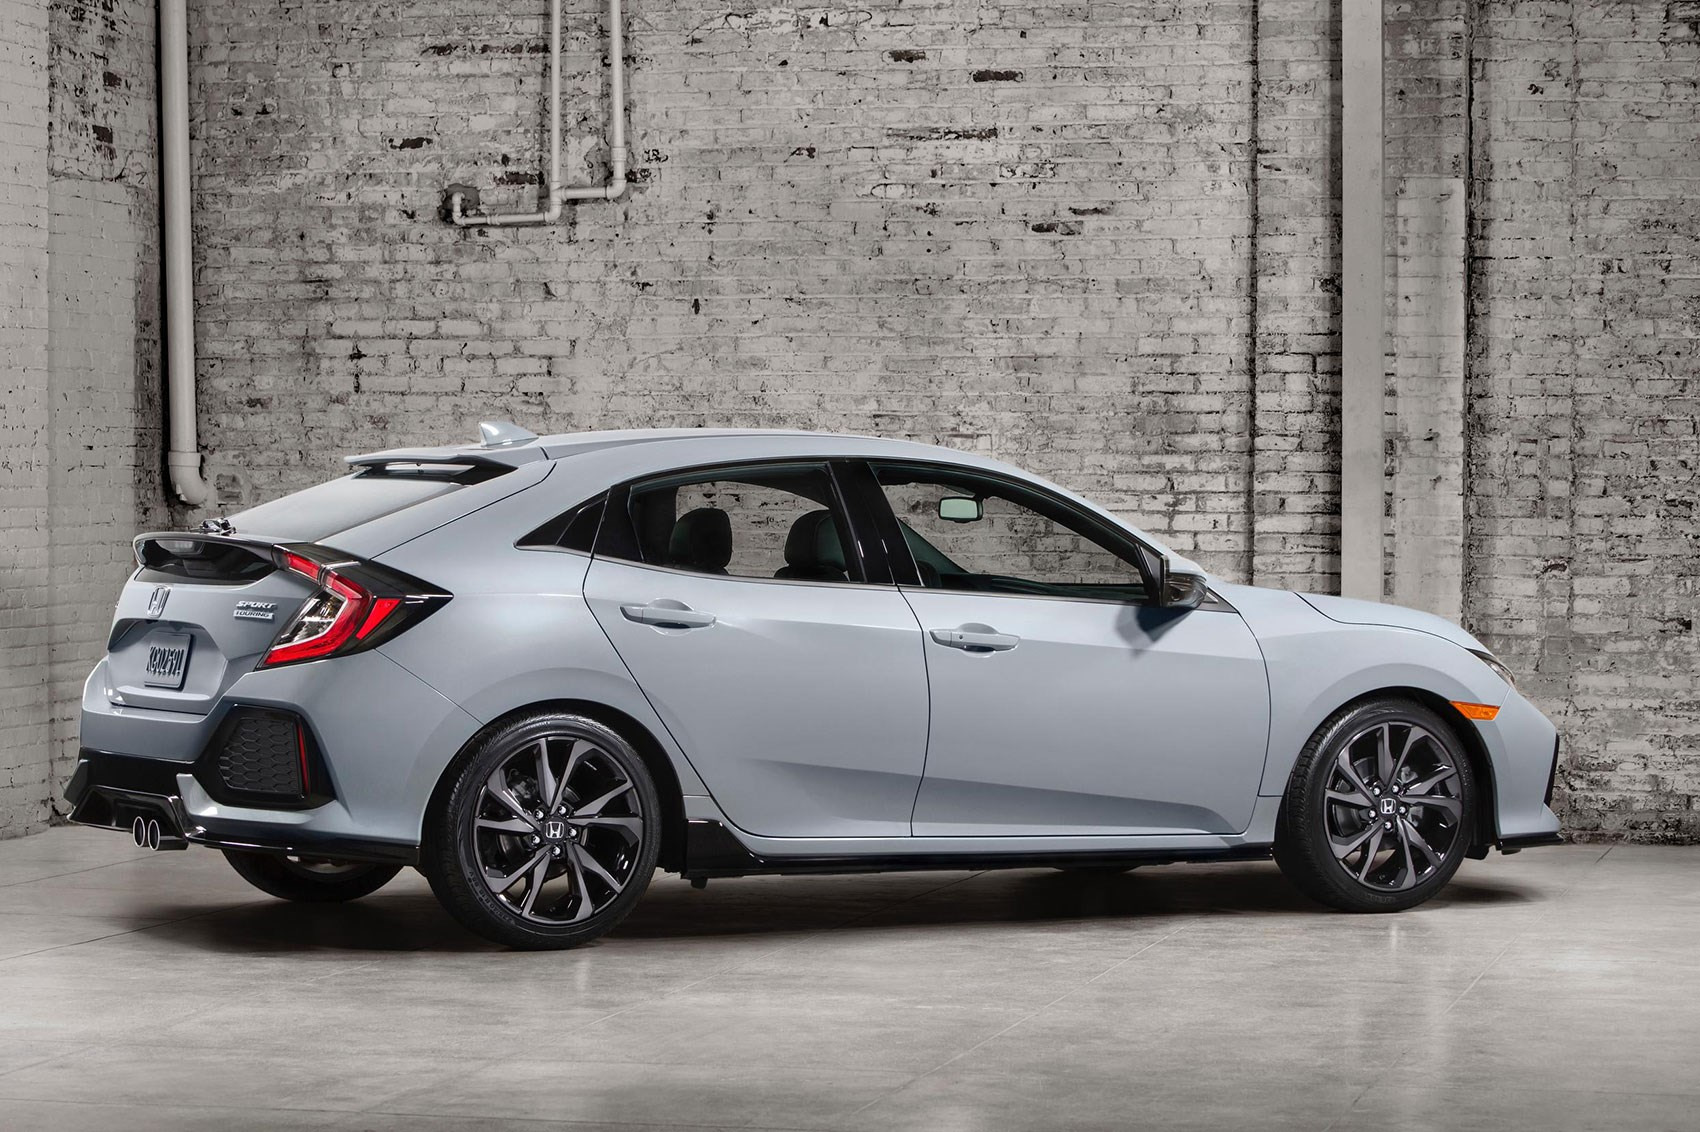 new 2017 honda civic hatchback officially unveiled by car magazine. Black Bedroom Furniture Sets. Home Design Ideas